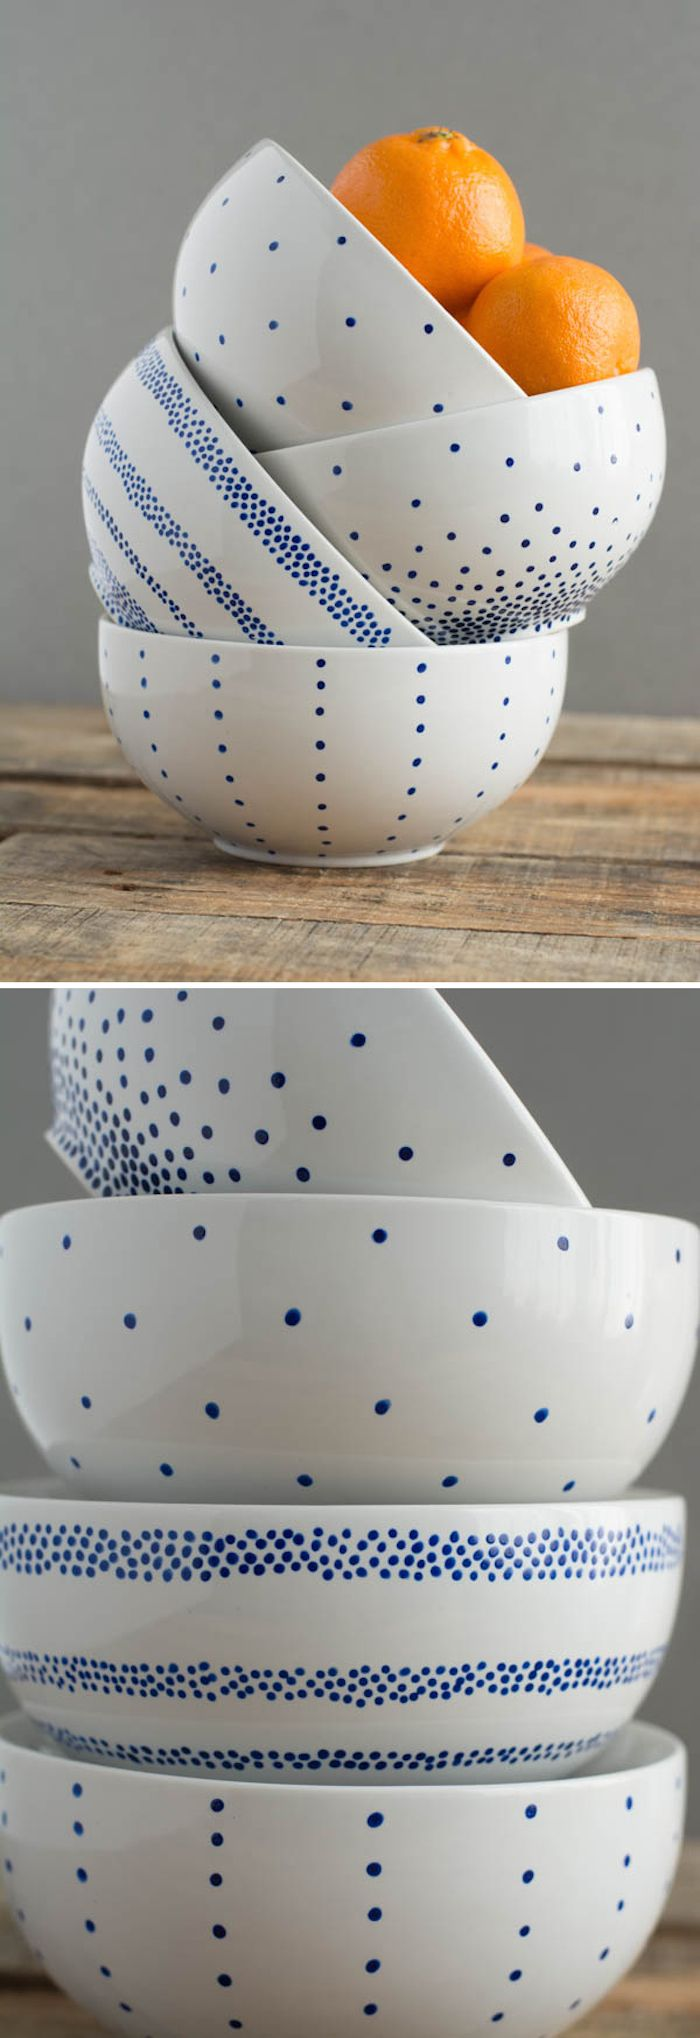 White ceramic plates for crafts - Diy A Set Of Pretty Painted Cereal Bowls